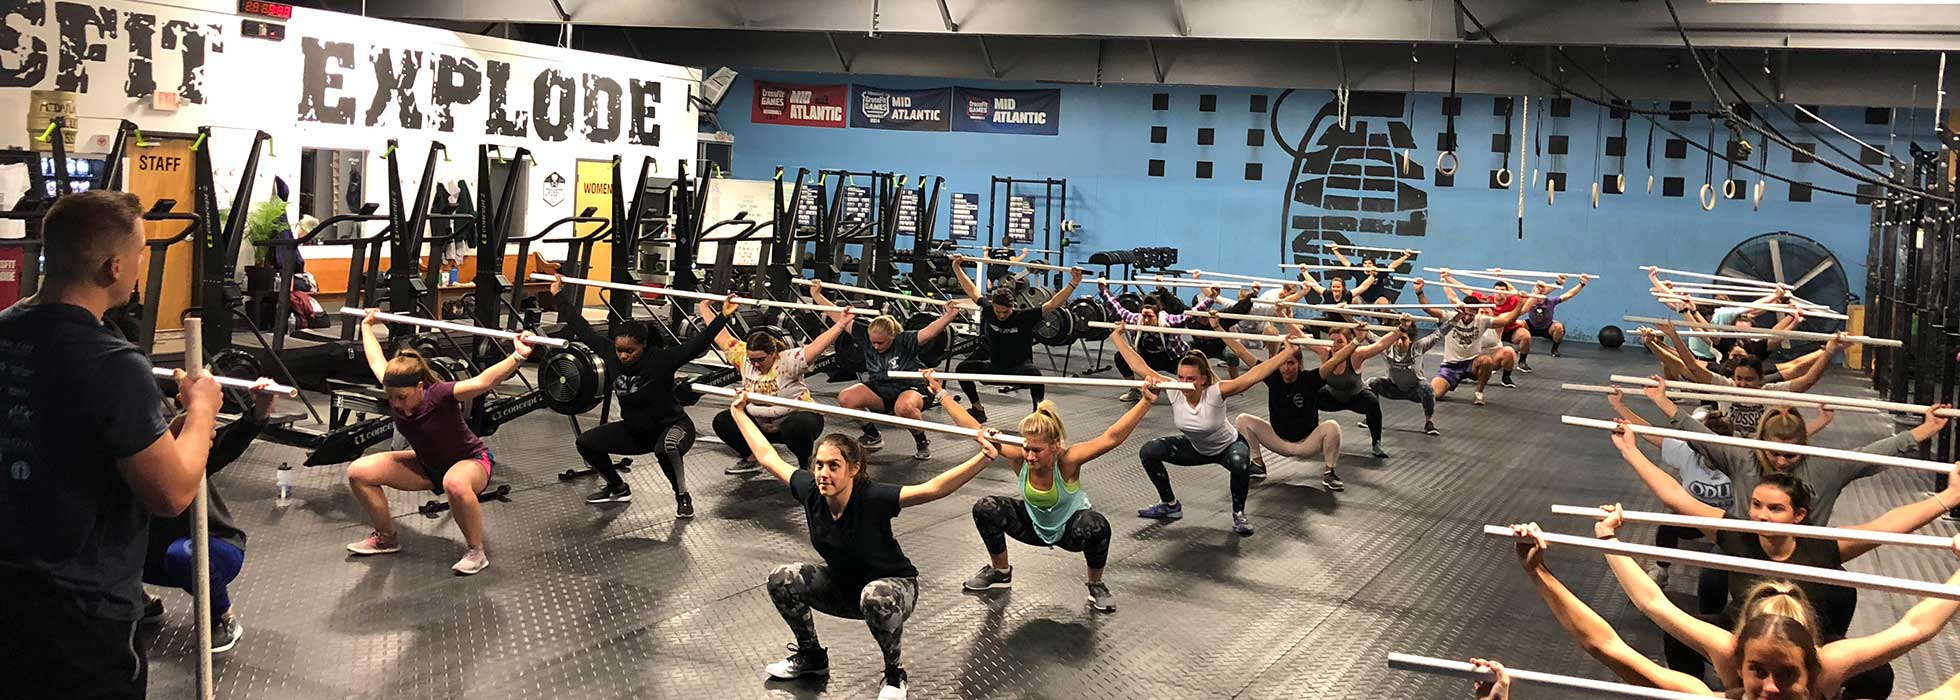 Why CrossFit Explode Is Ranked One Of The Best Gyms In West Chester